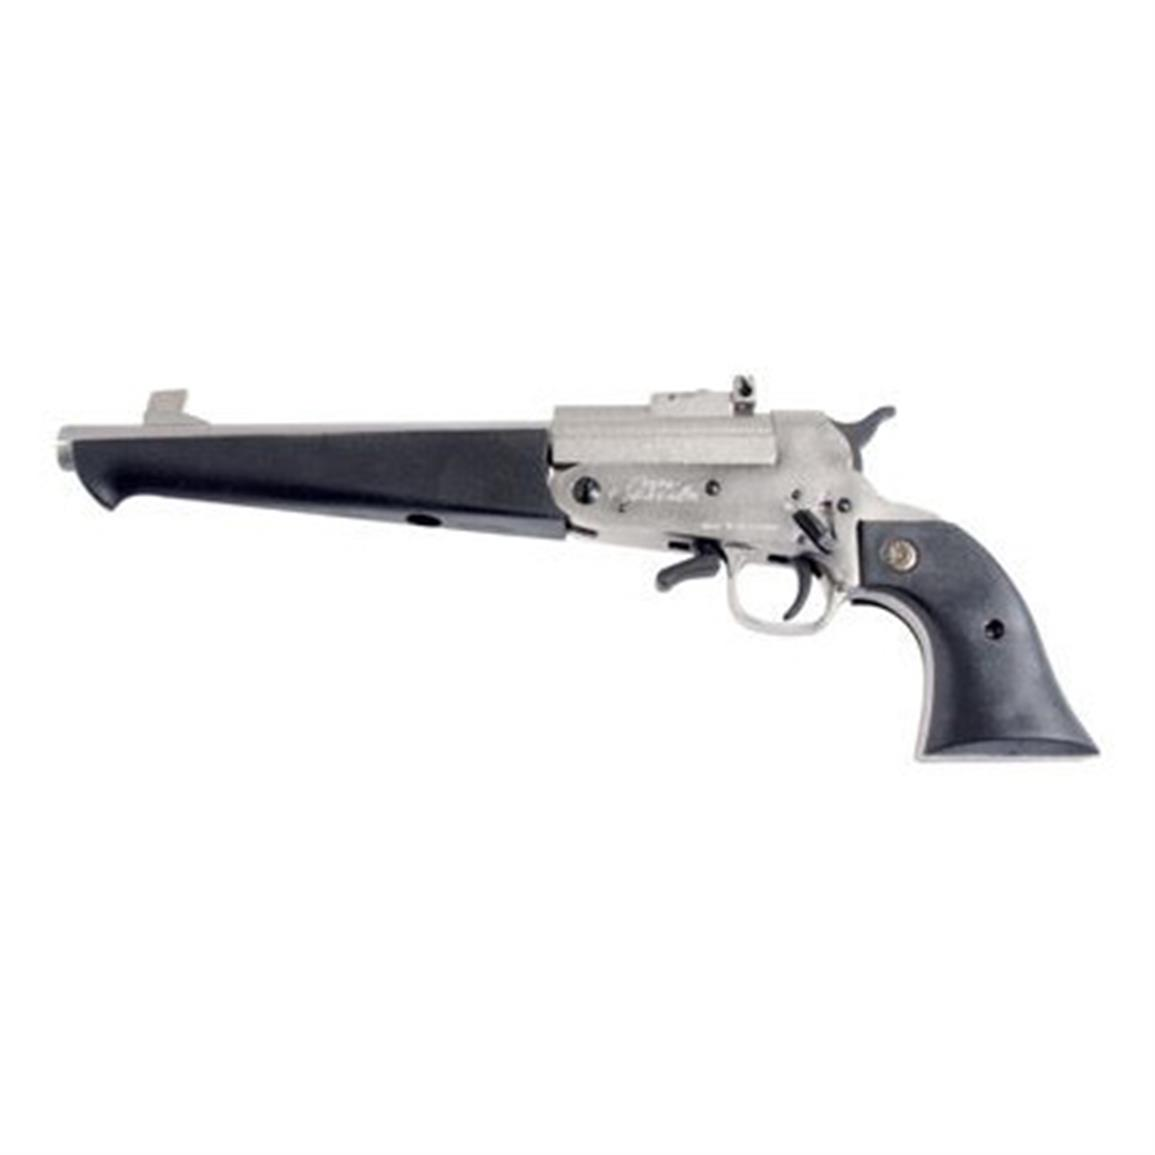 Comanche Super Comanche Long Barrel, Single Shot, .410 Bore, SCP60000, Satin Nickel Finish